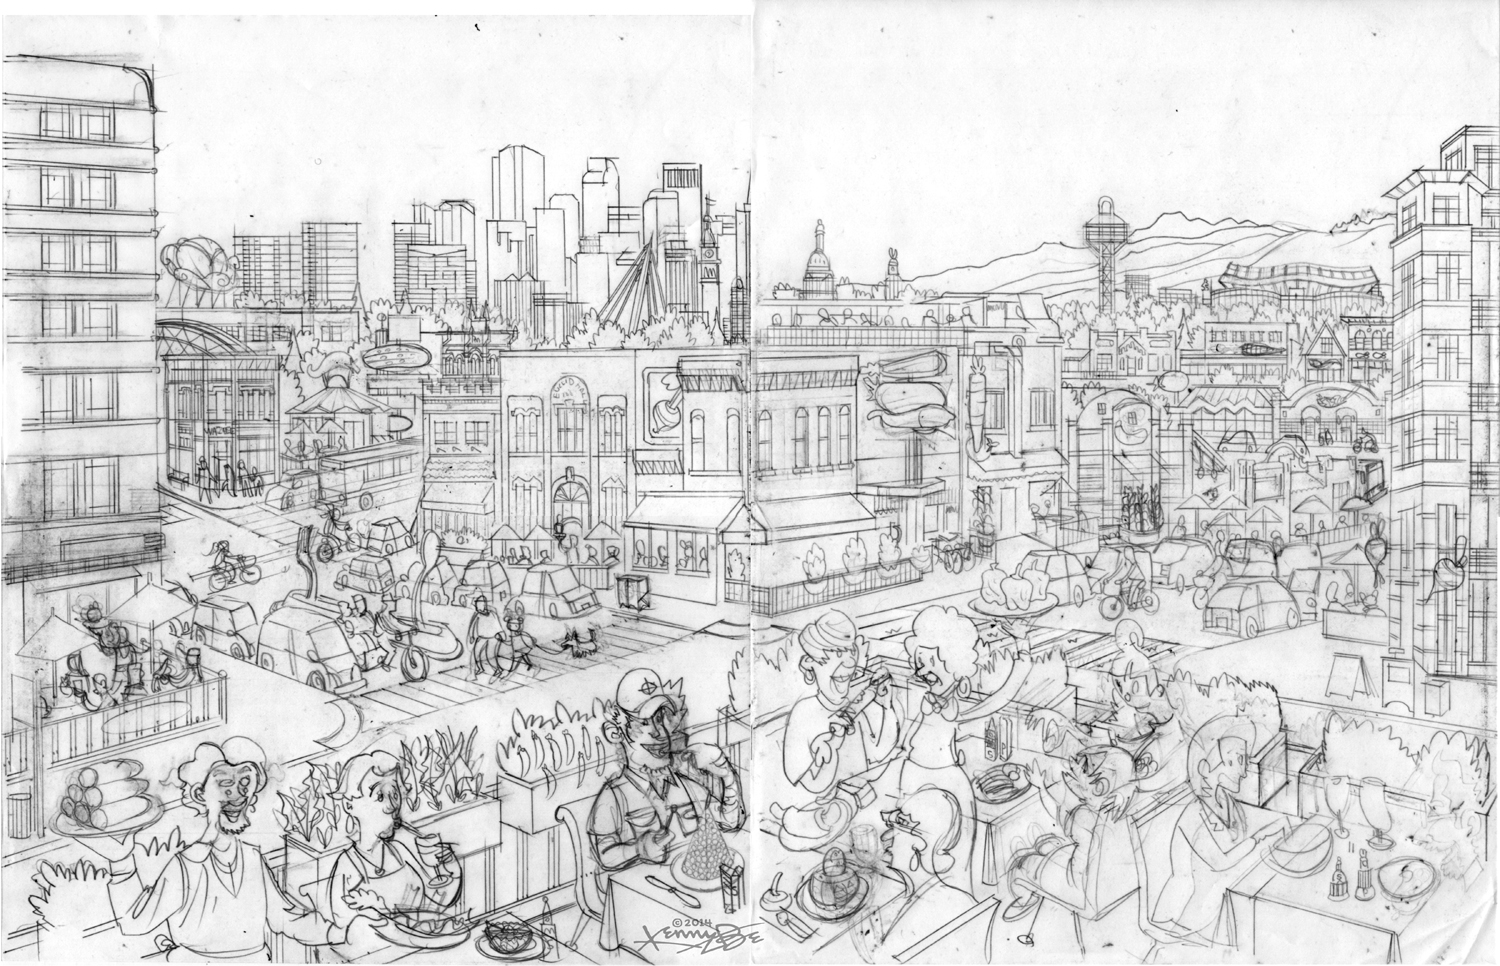 The center view of the drawing features Denver's iconic restaurants packed into a make believe street scape.